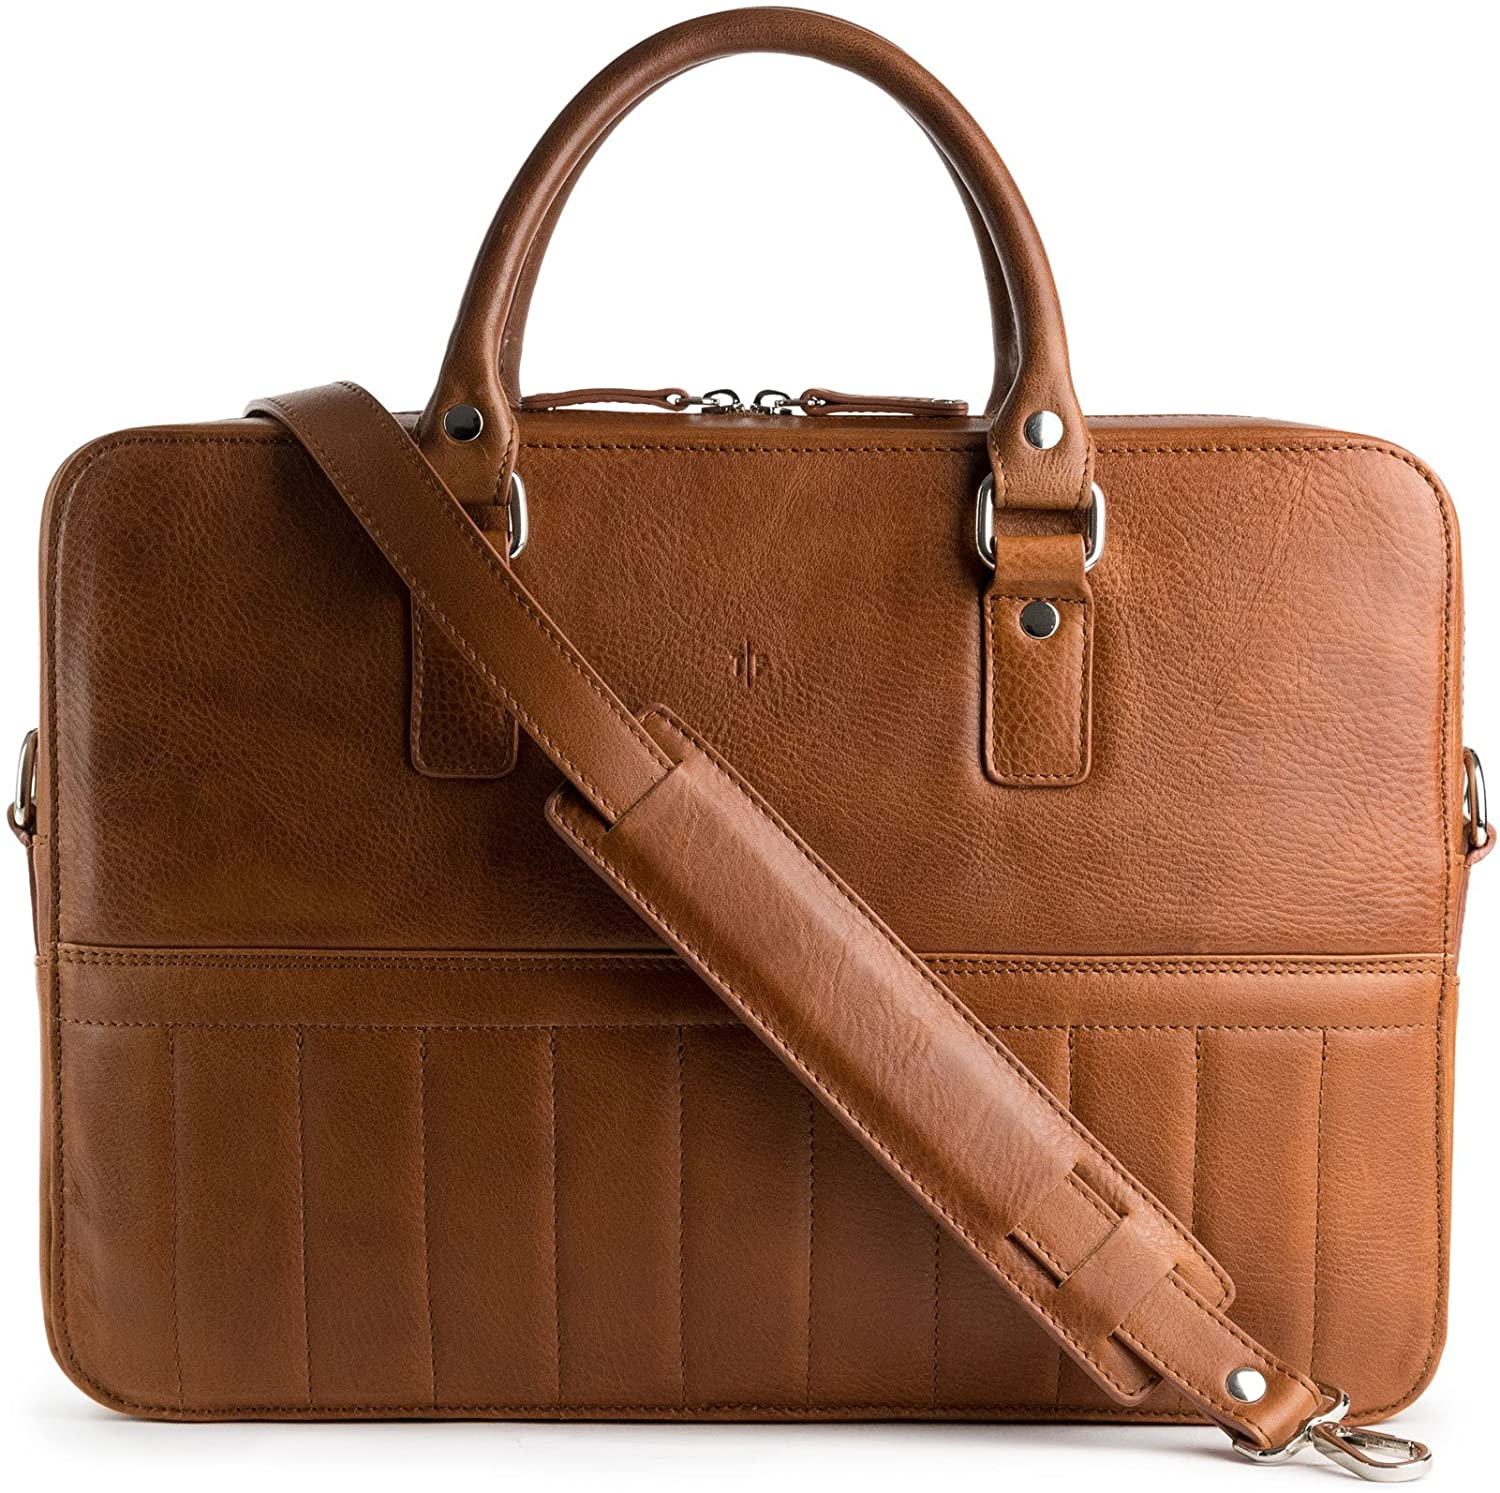 Urban Leather Bag - Free Minimalist Leather Wallet Included - 2in1 Messenger and Briefcase (Old School)